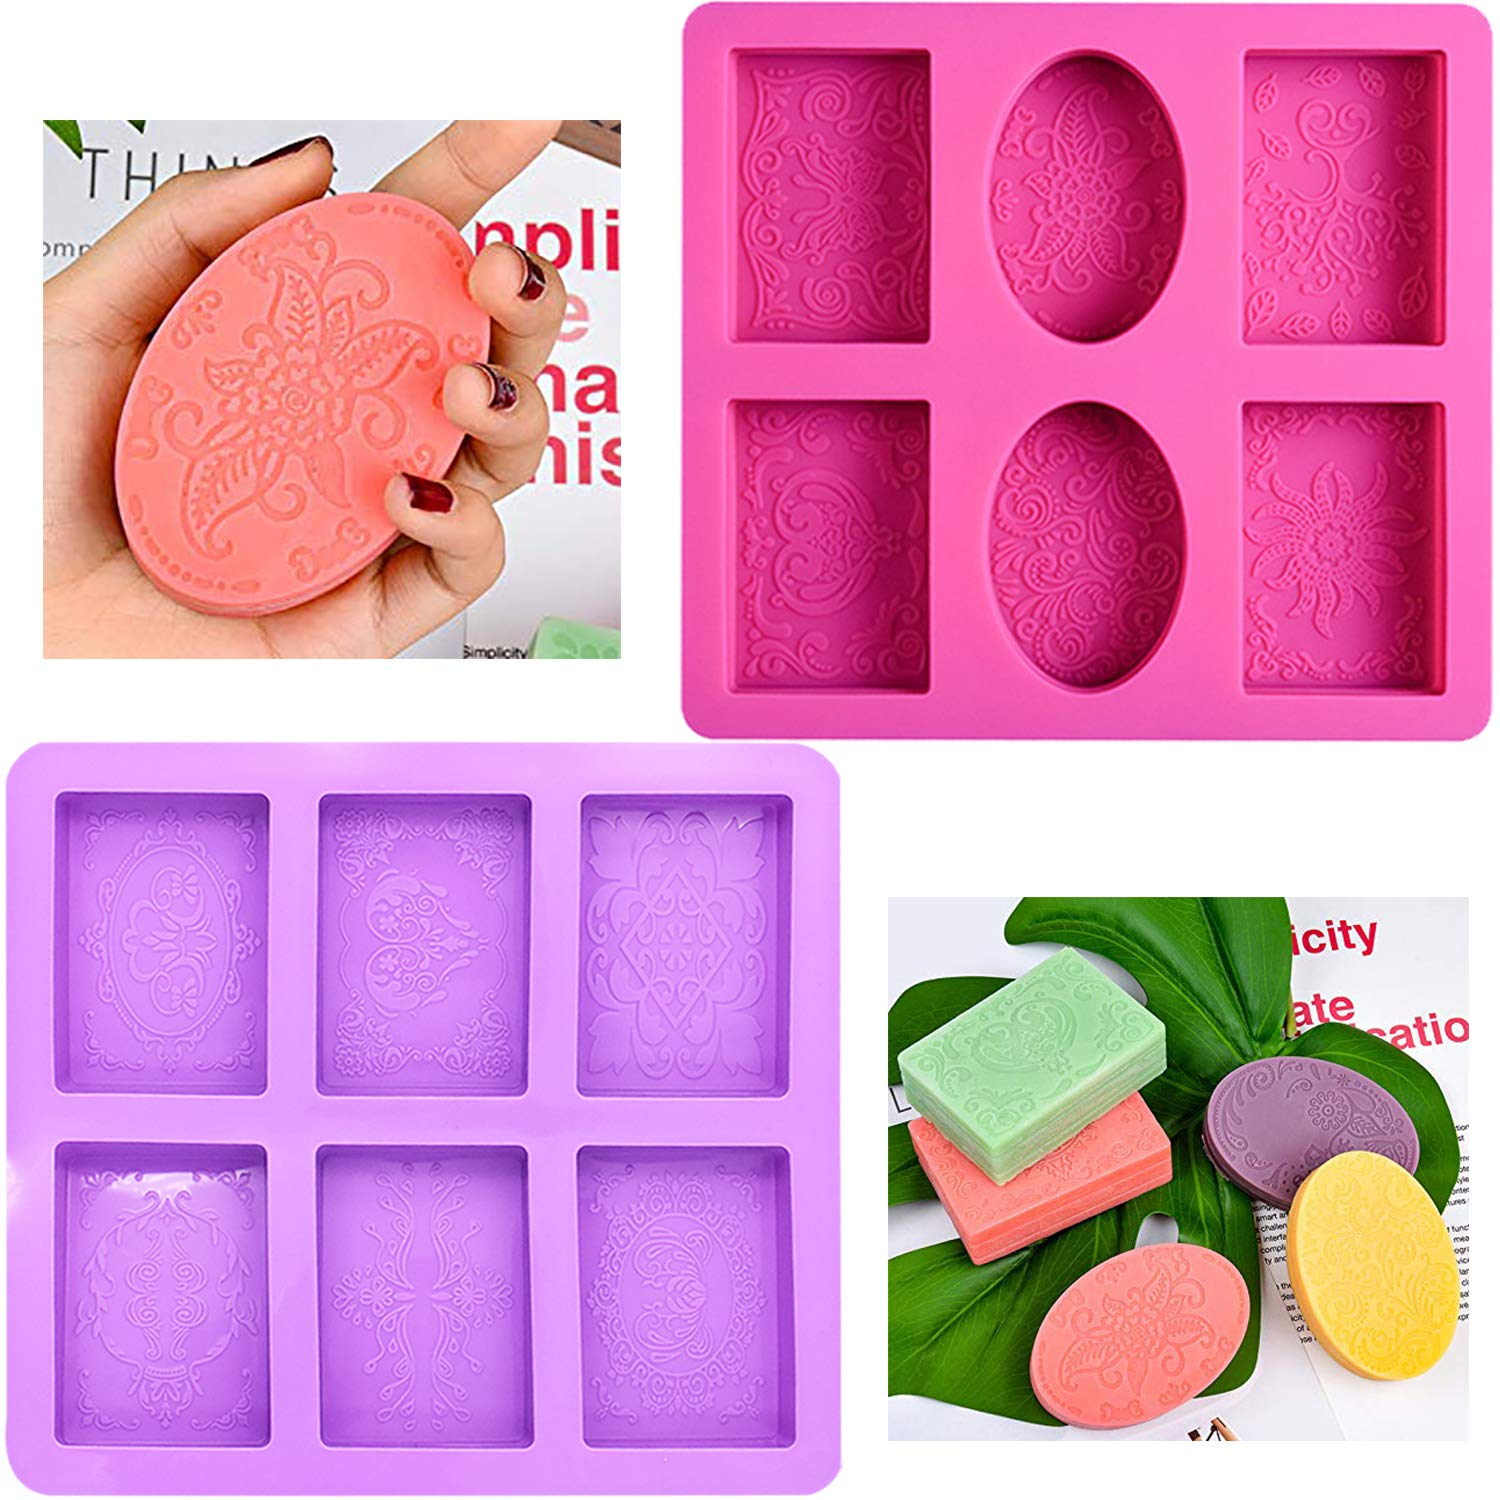 Soap Mold BESTZY 2PCS 6 Cavity Silicone Mould DIY Soap Mould Mooncake Chocolate Wafer Silicone Molds for Halloween